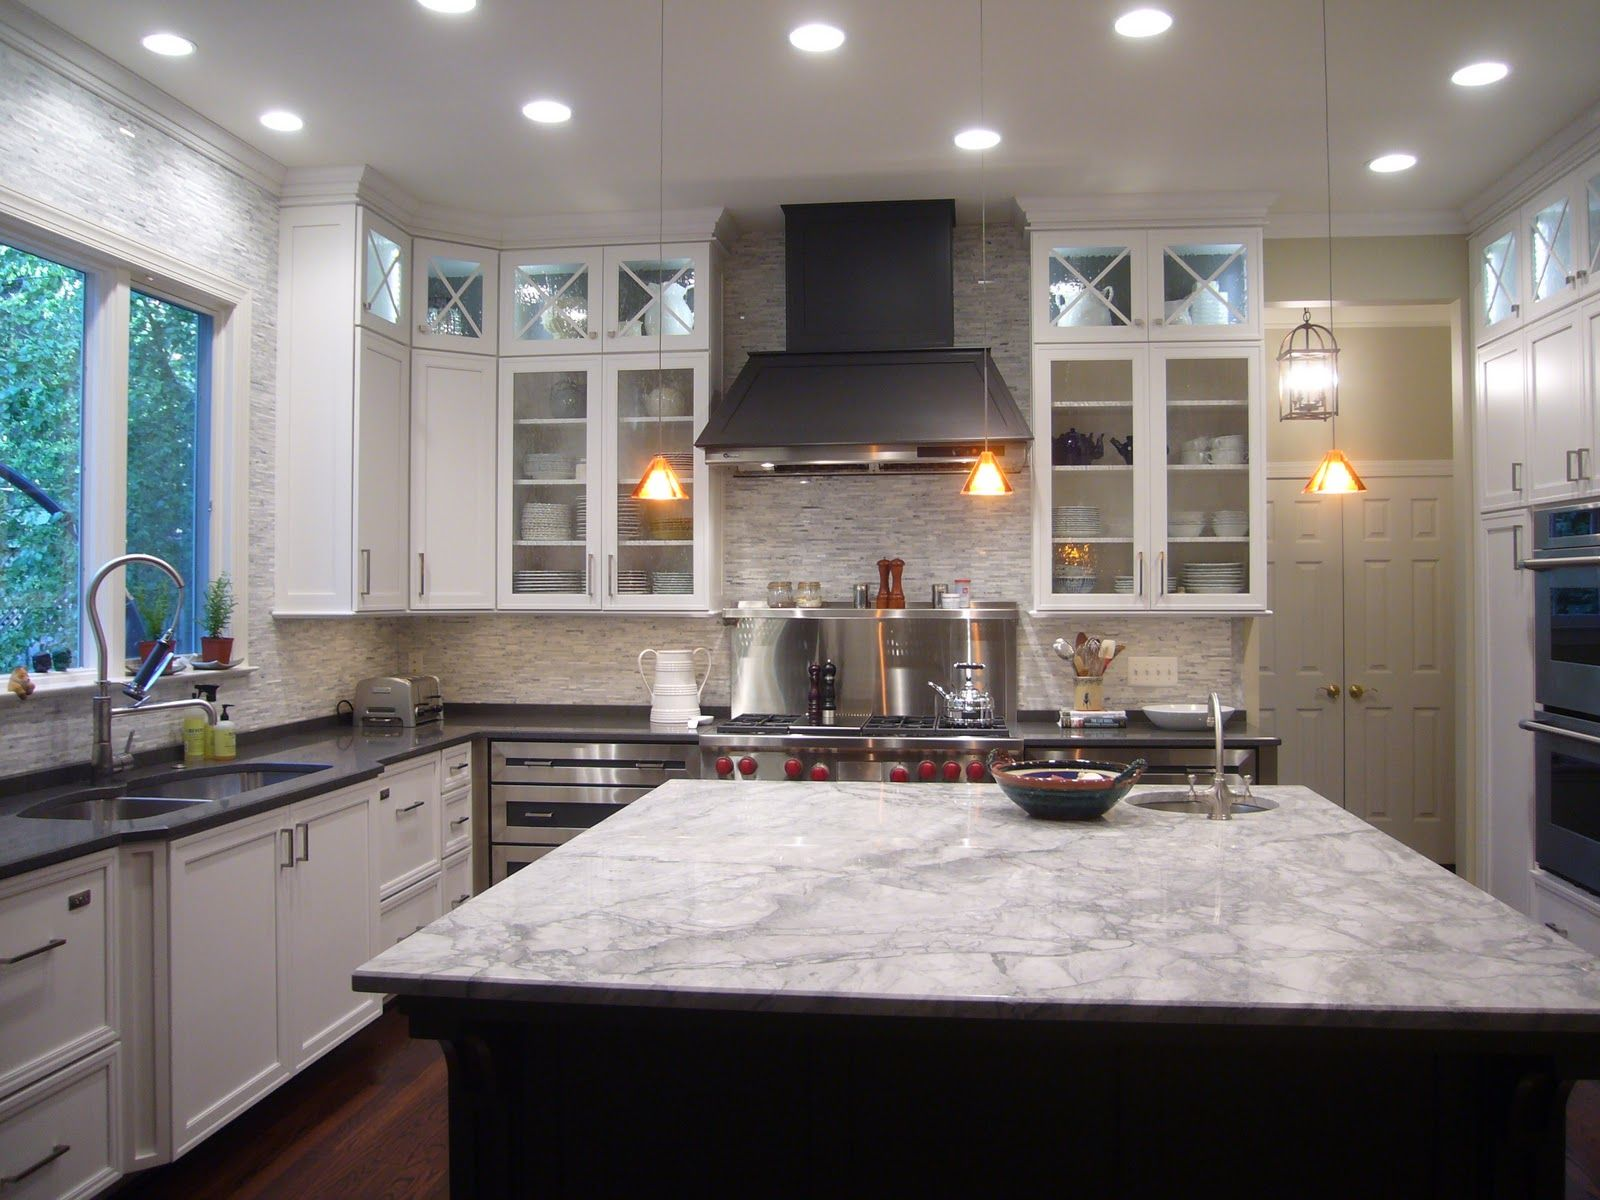 White Fantasy granite on the island and a compliment of